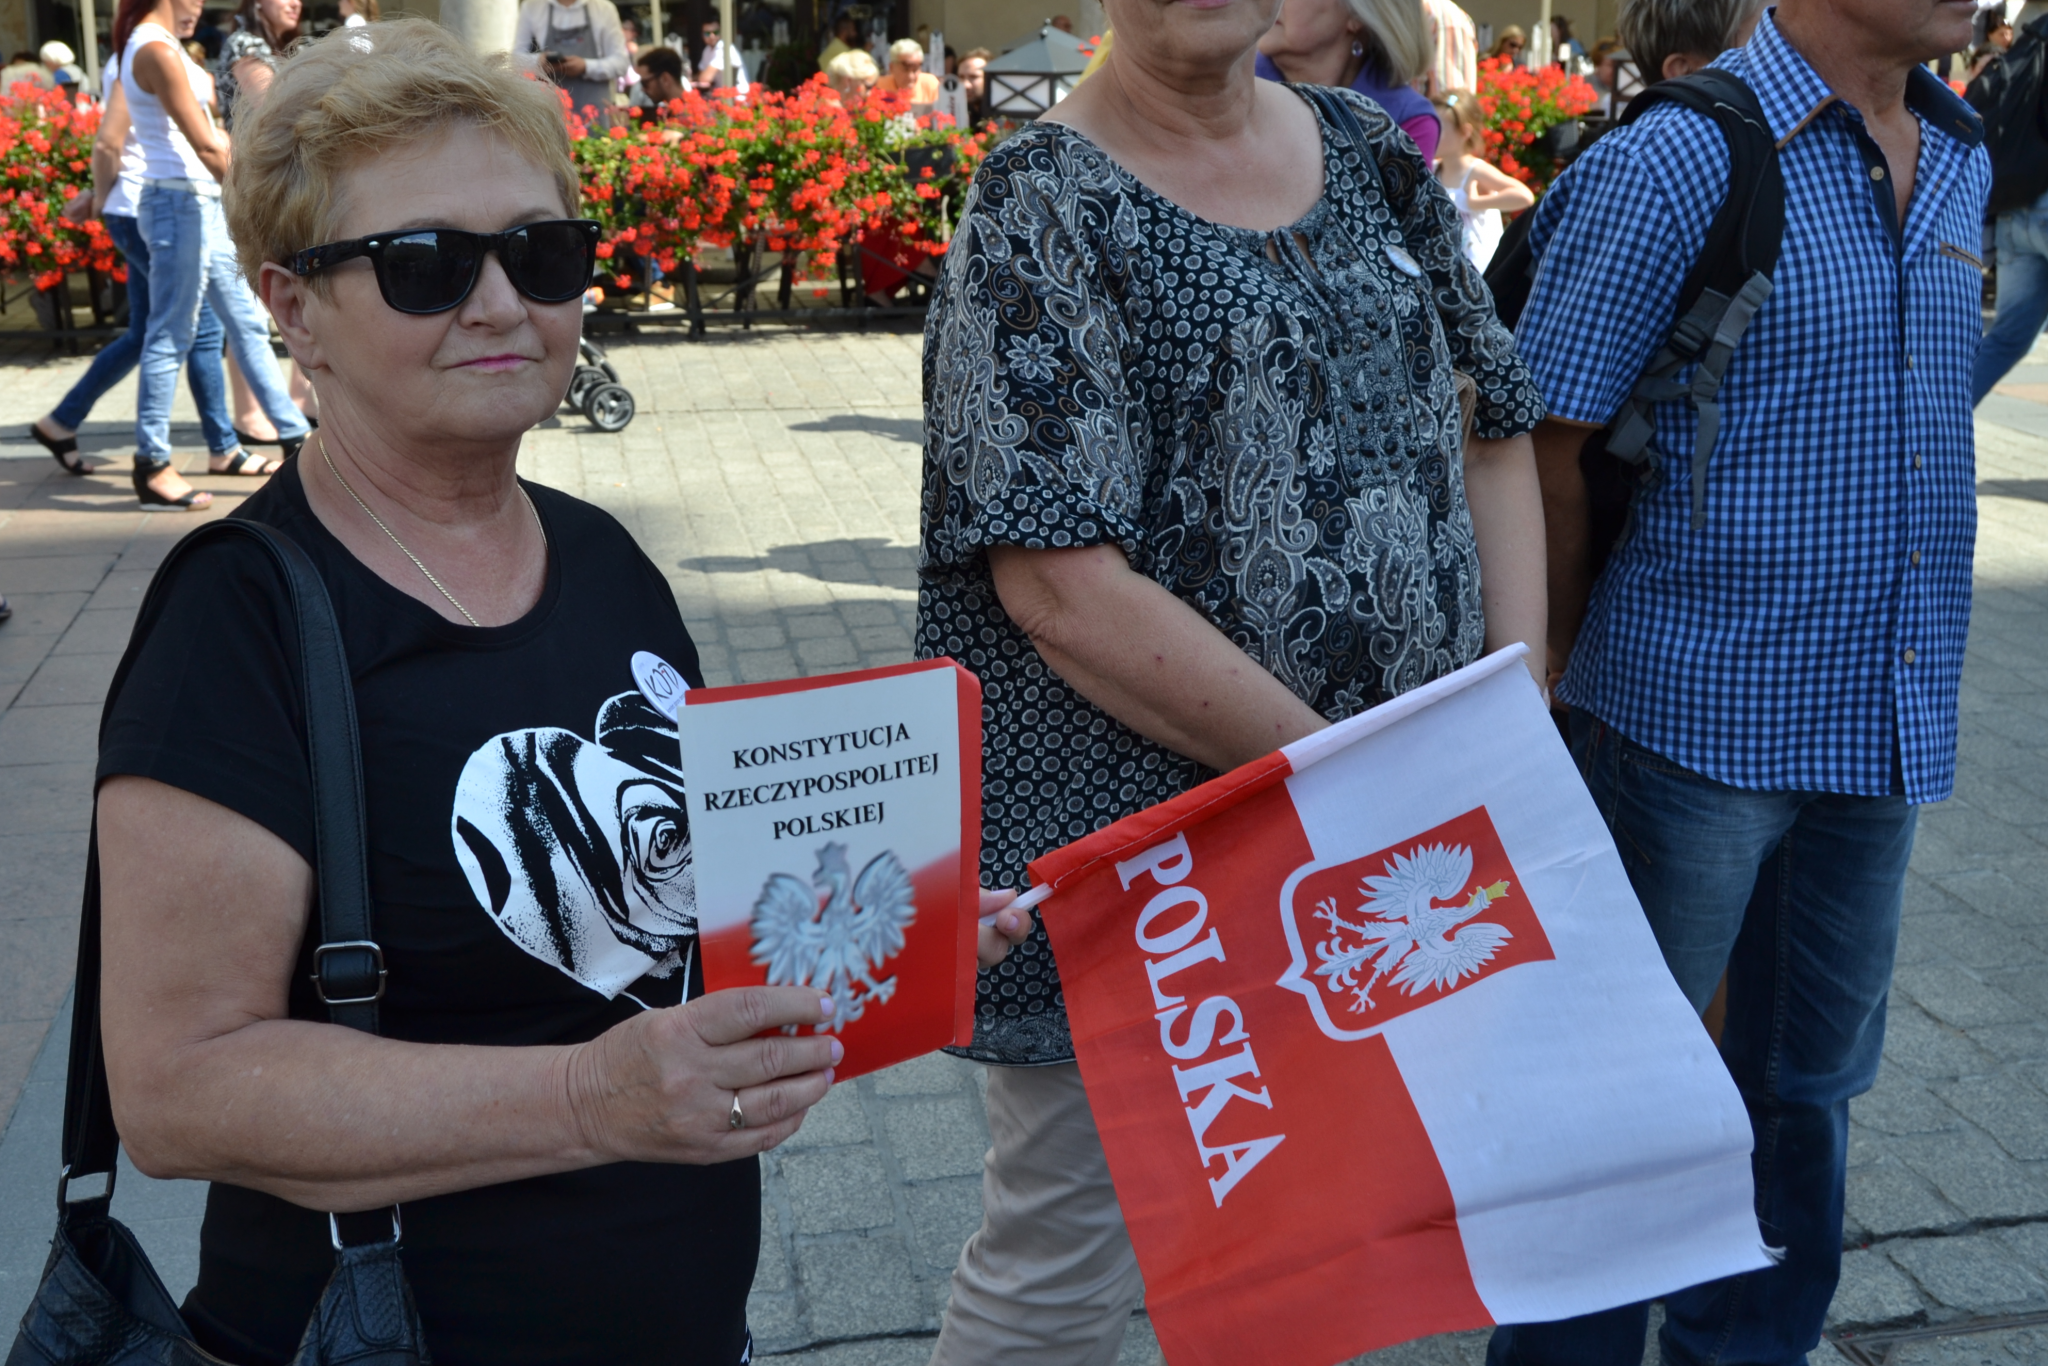 A Polish woman holds her flag and Constitution at the demonstration